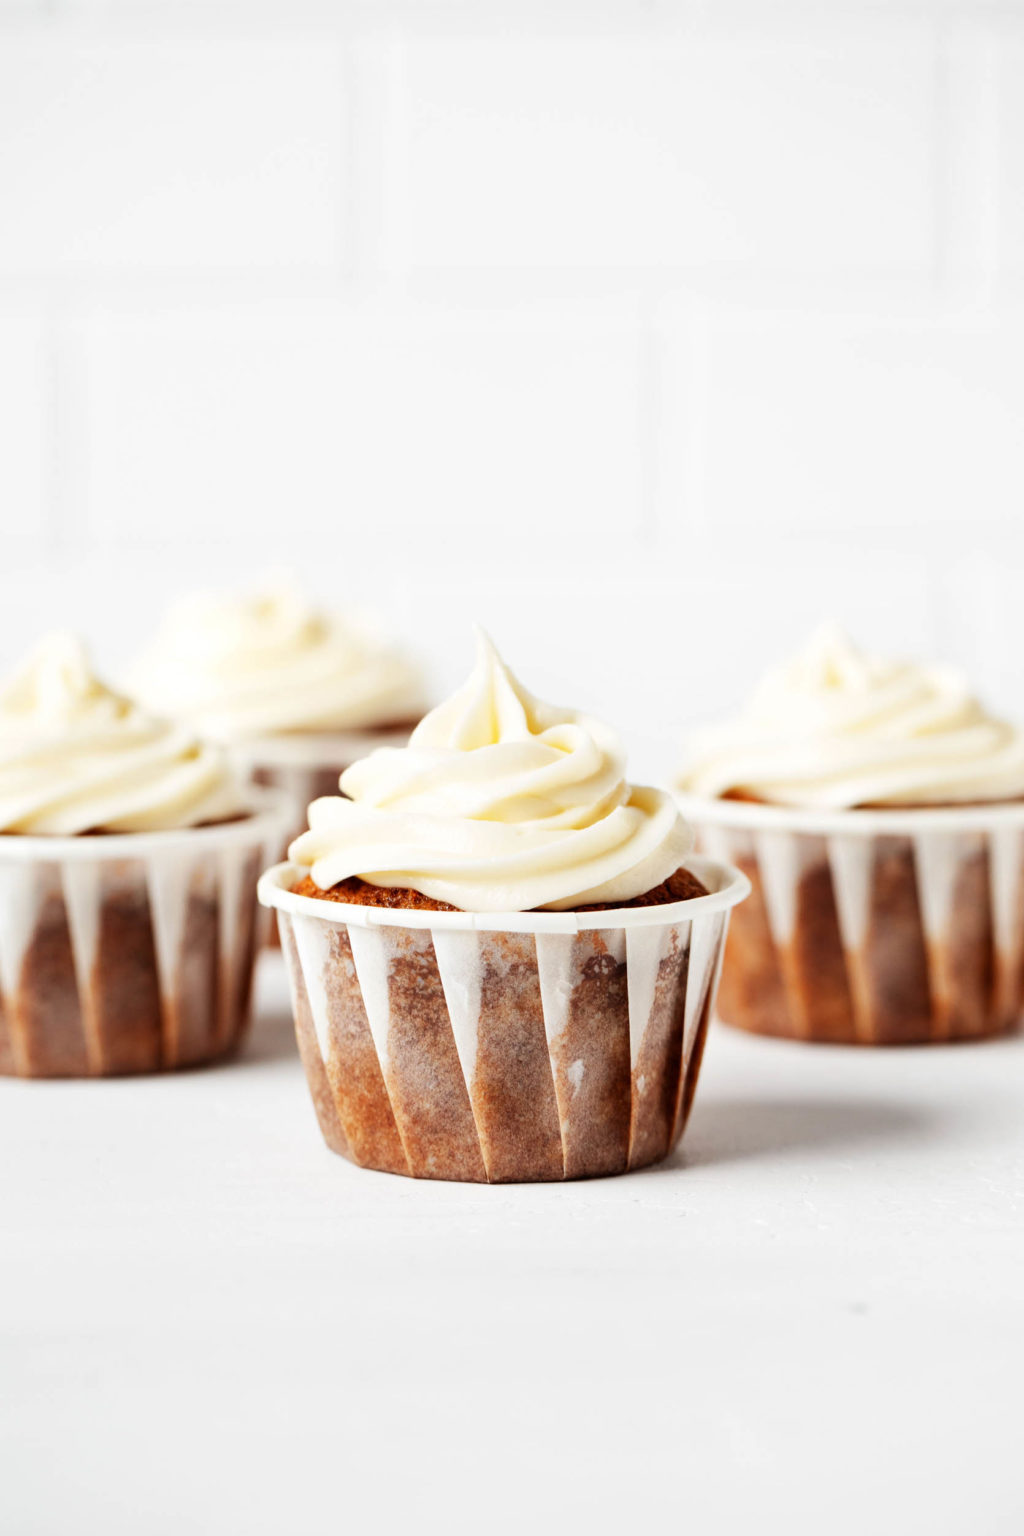 Frosted vegan carrot cake cupcakes are lined up next to each other against a bright backdrop.